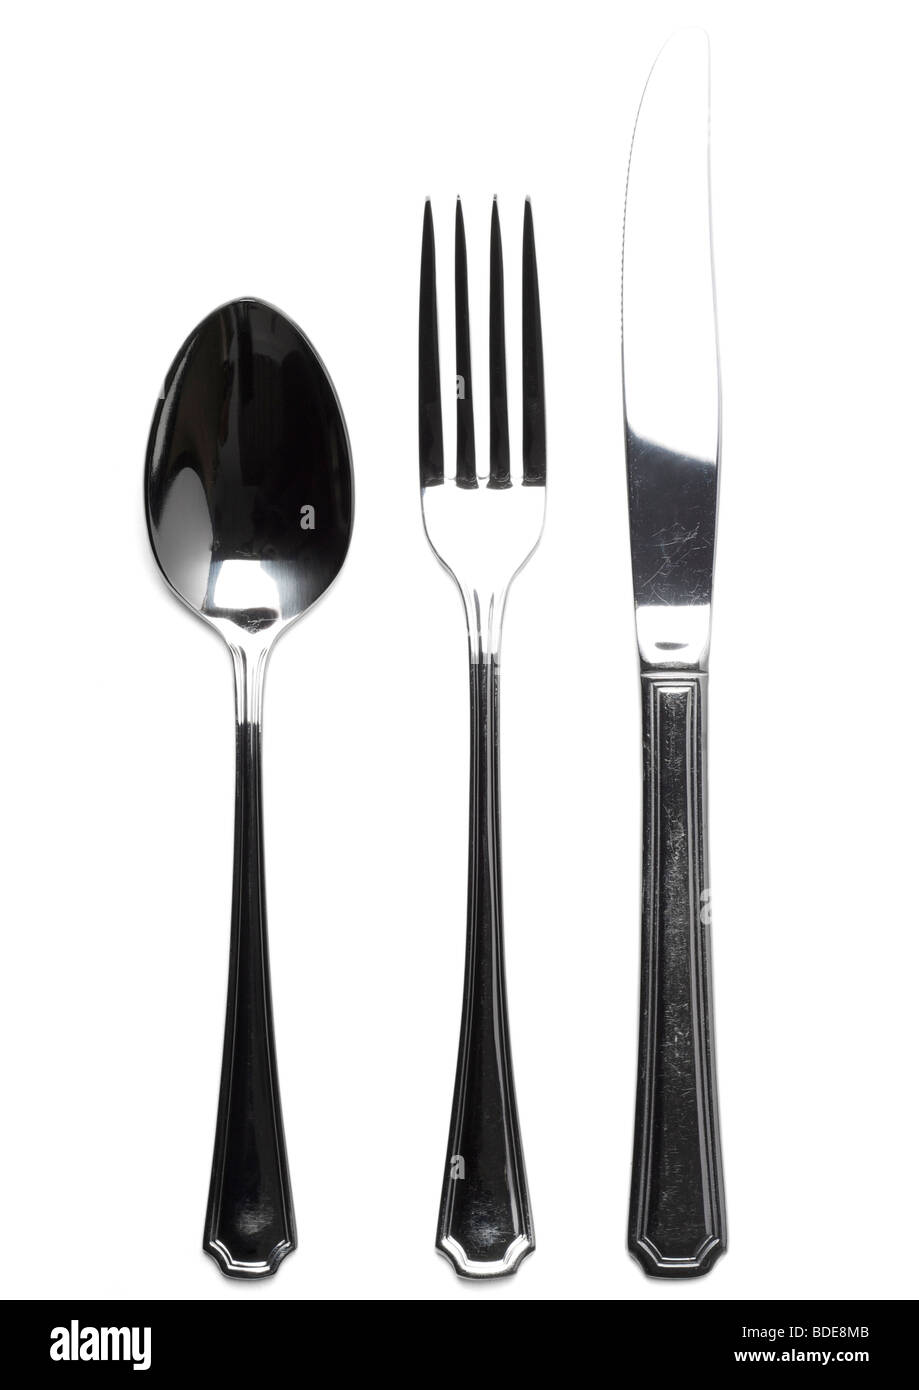 Old knife, fork and dessert spoon on white background - Stock Image